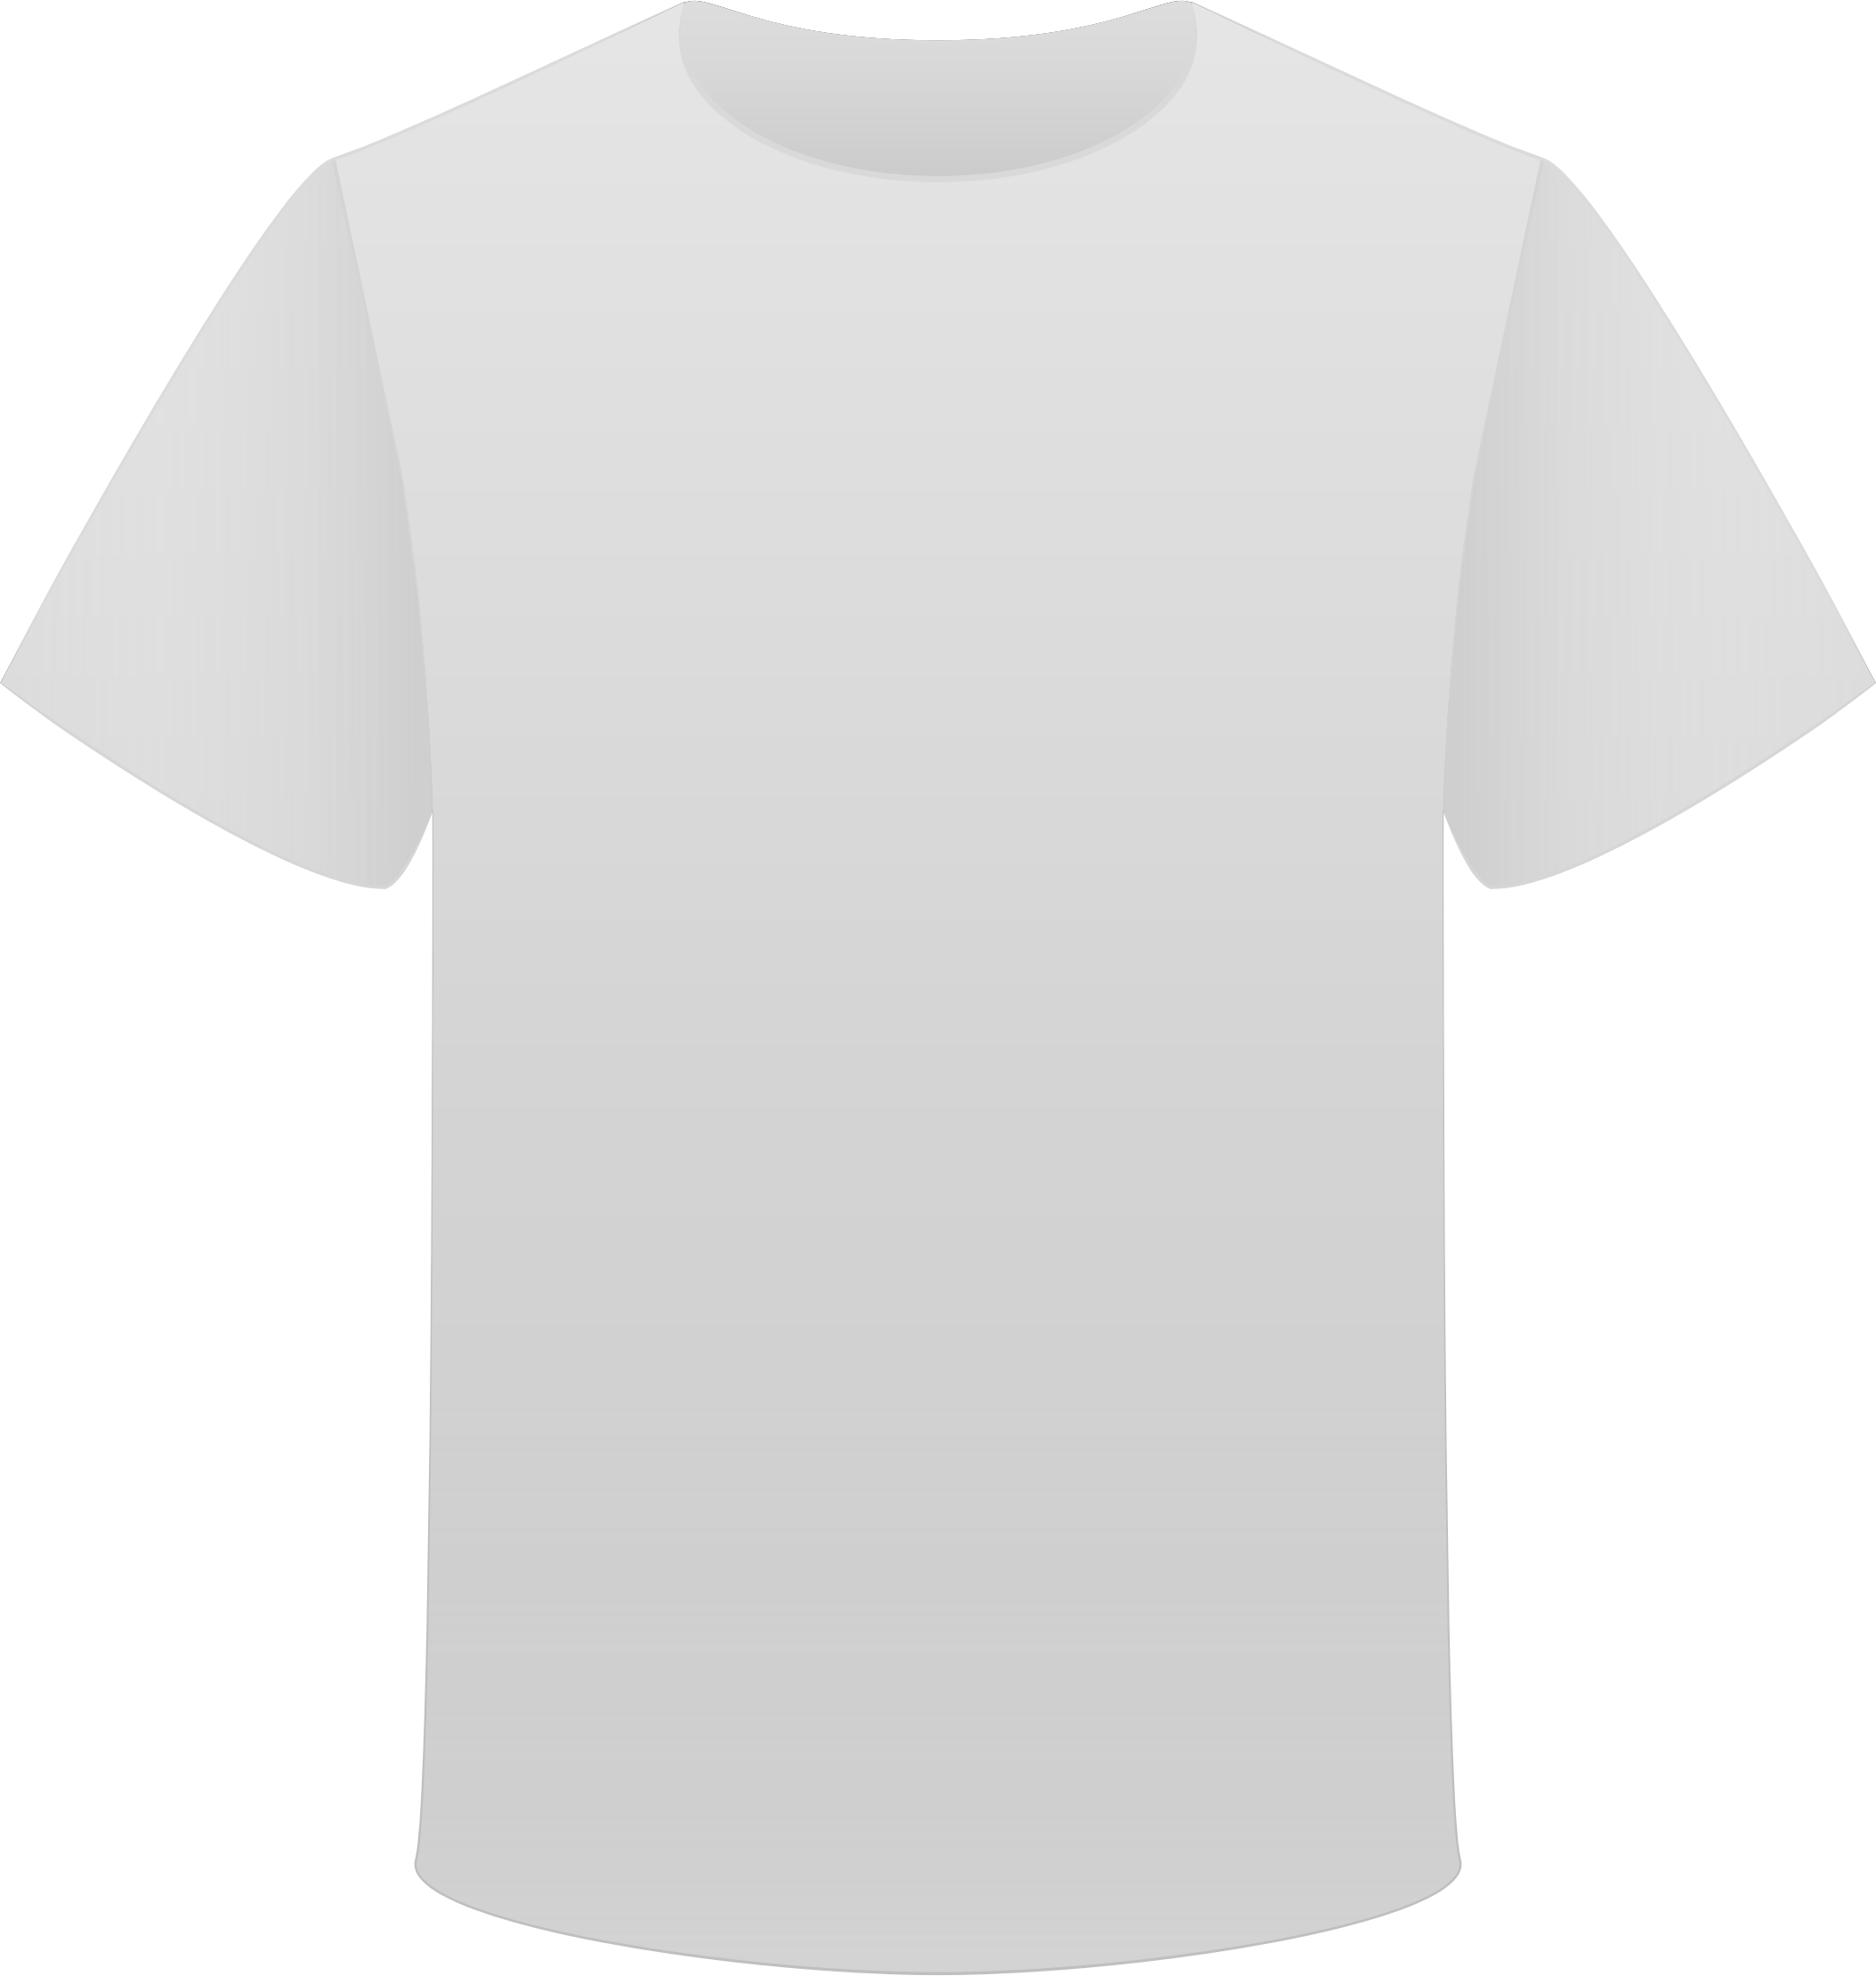 T shirt .png. Gray icons png free